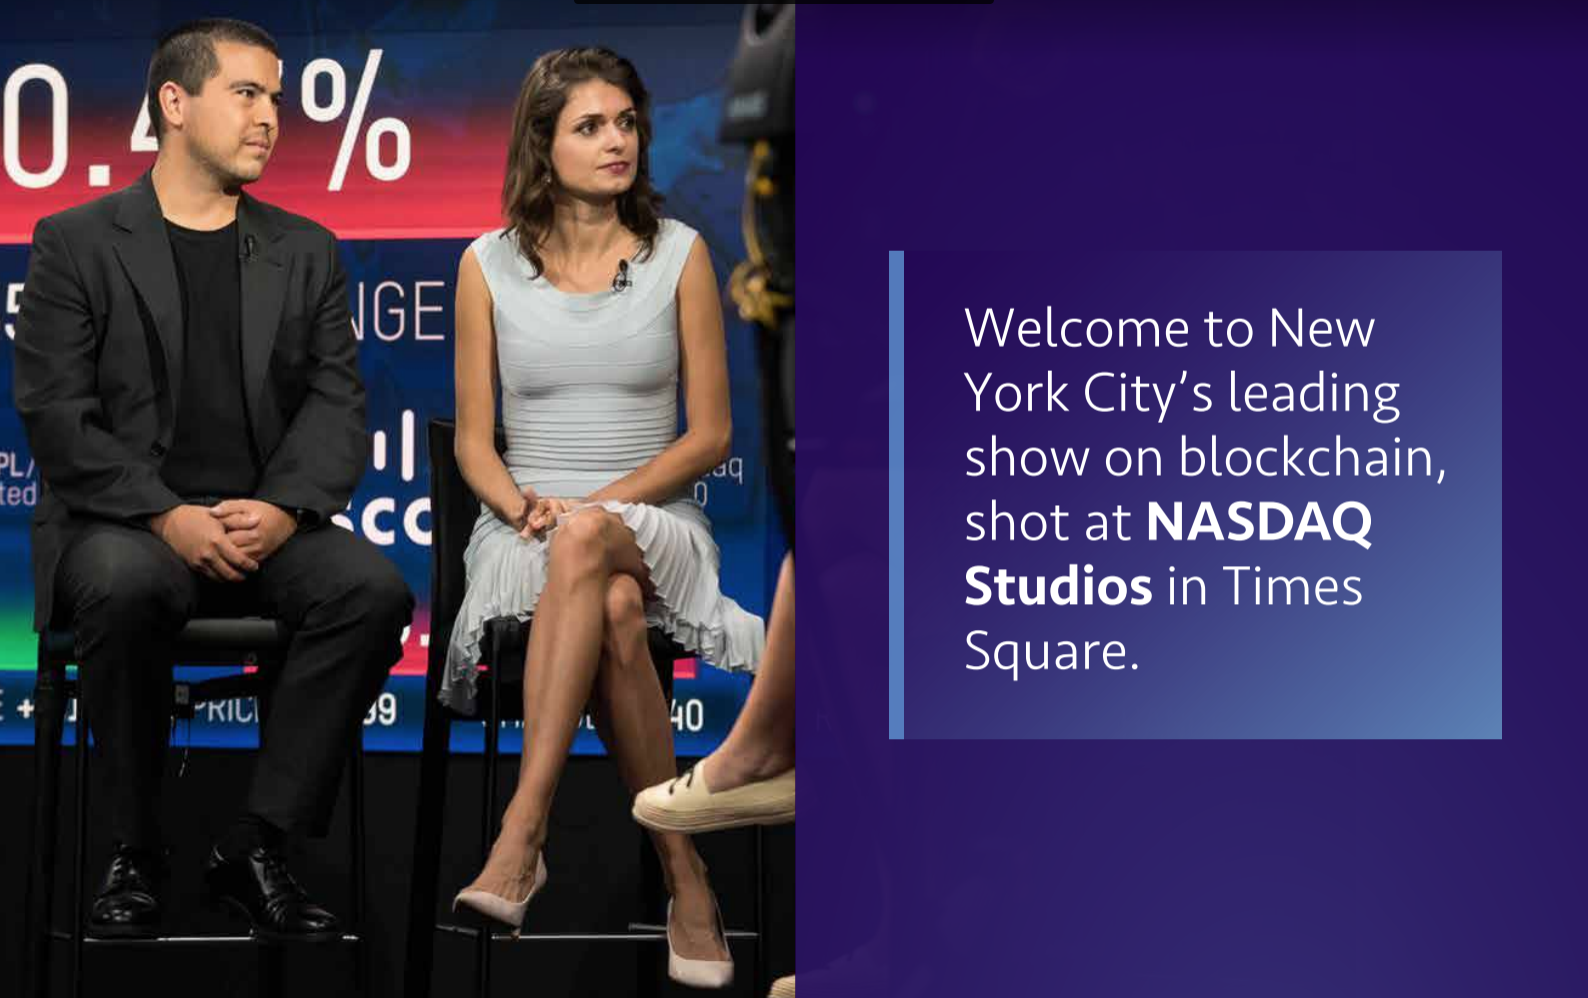 New York City NASDAQ studios